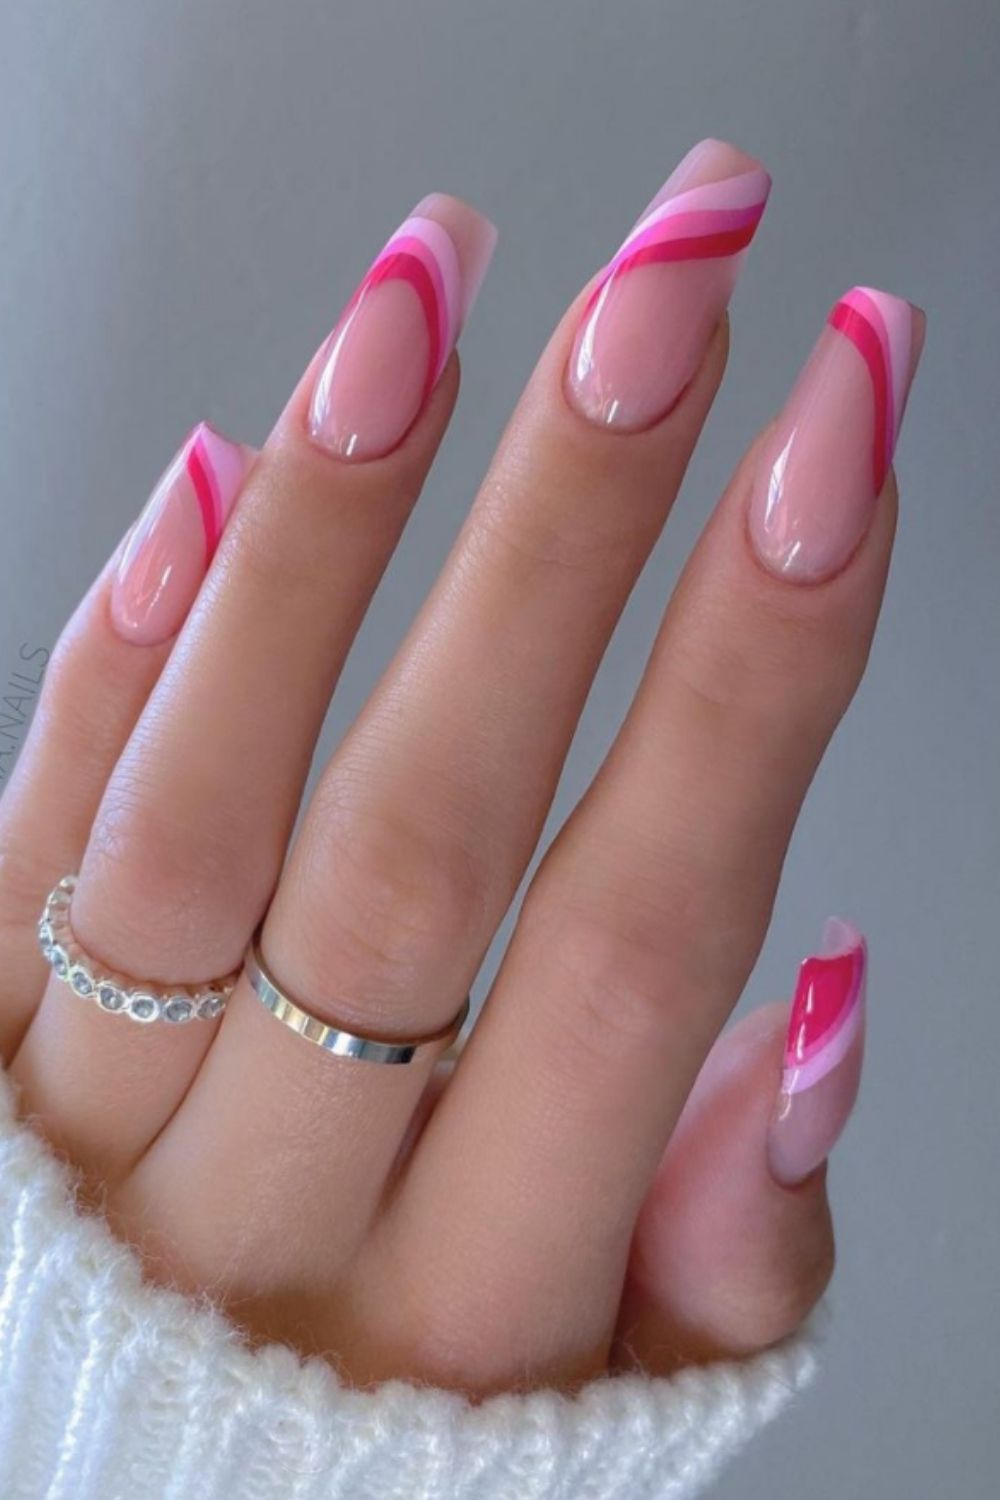 Coffin nails 2021